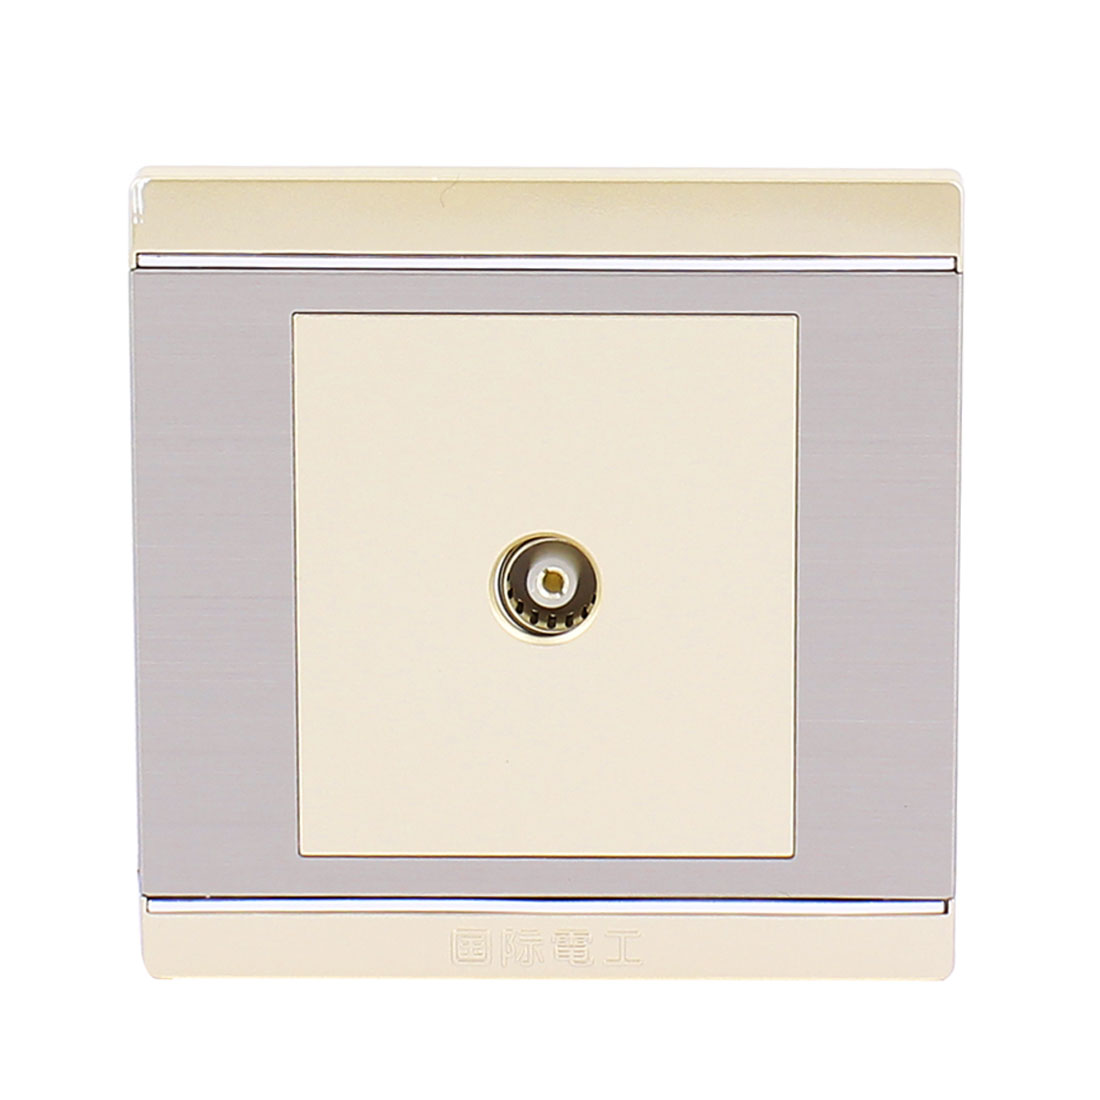 TV Port Socket Mounting Coaxial Outlet Wall Plate 85mm x 85mm AC 250V 10A